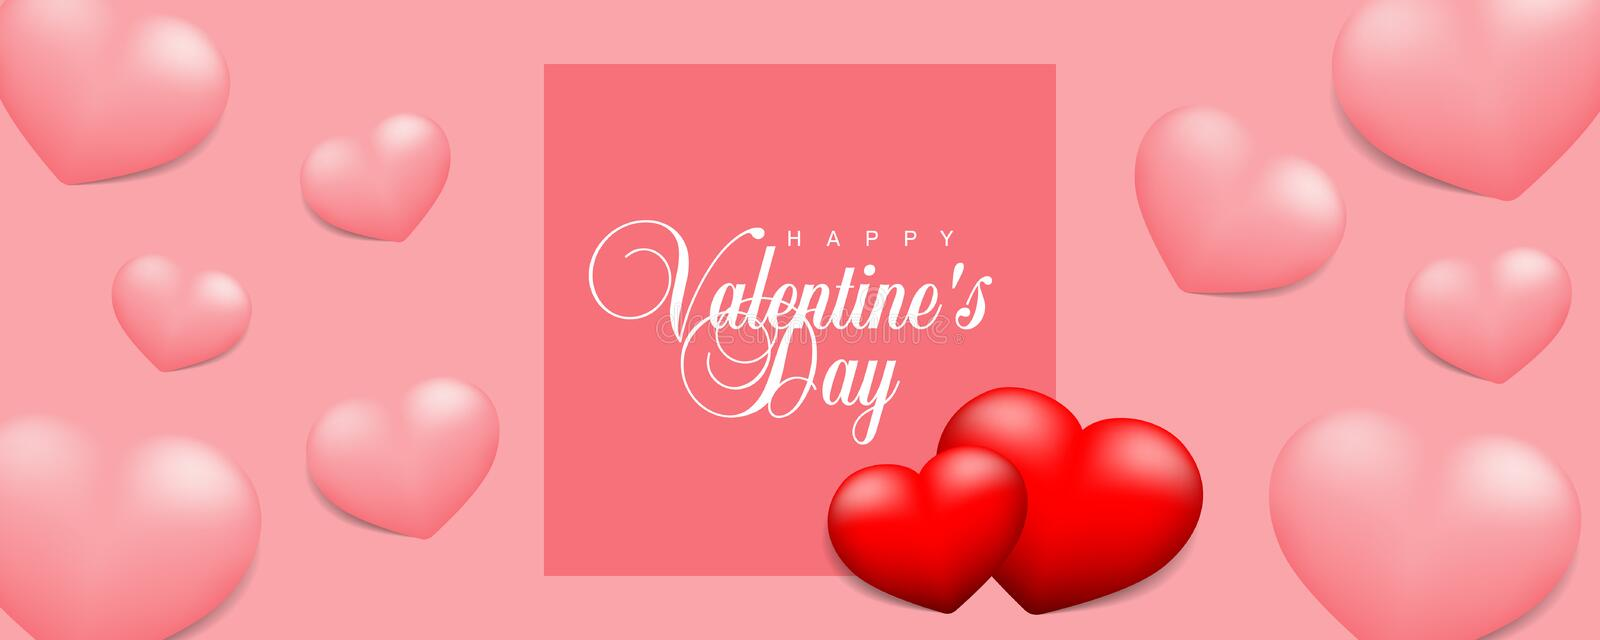 Happy Valentines Day vector illustration banner, flyer, poster, voucher, website header layout with couple red hearts and pink hea vector illustration